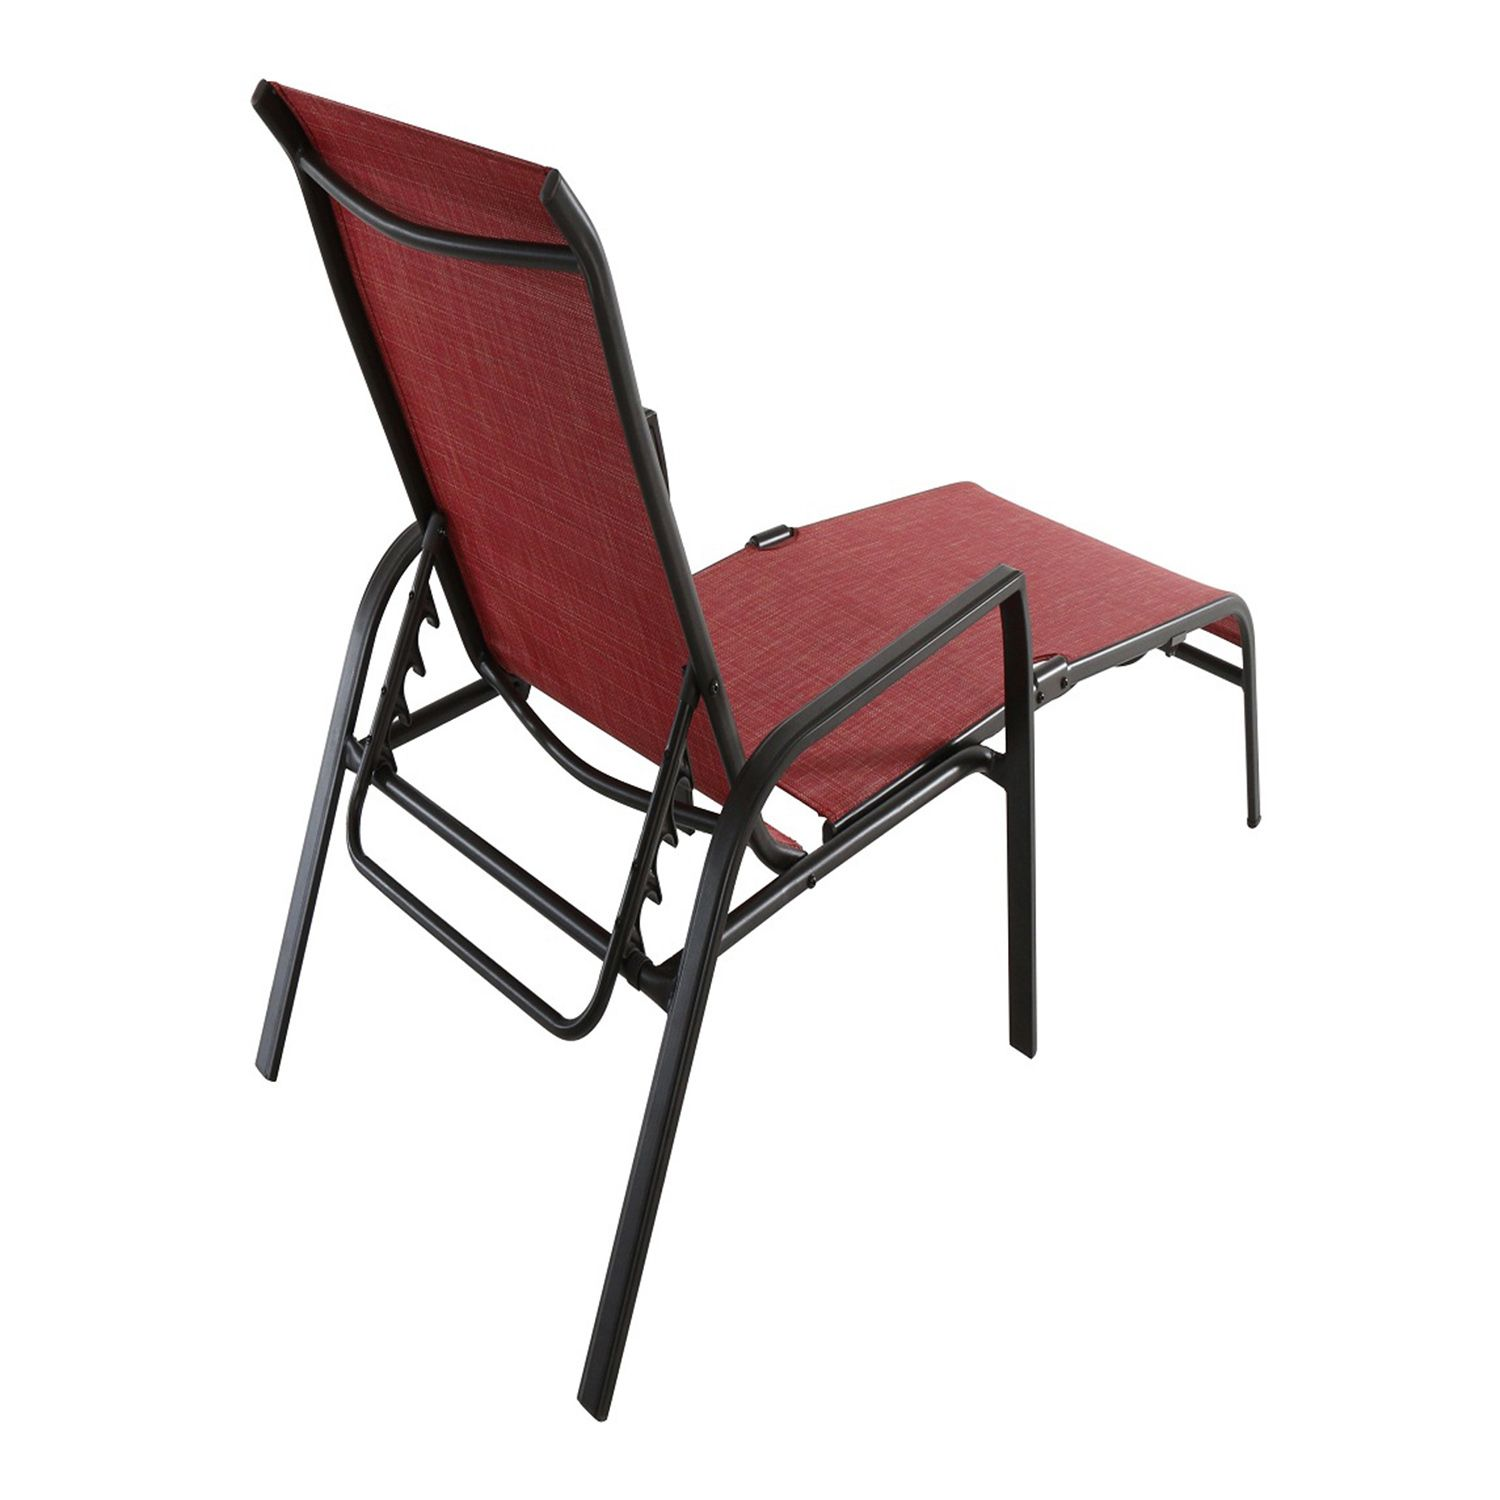 Coronado Outdoor Folding Chaise Lounge Chair